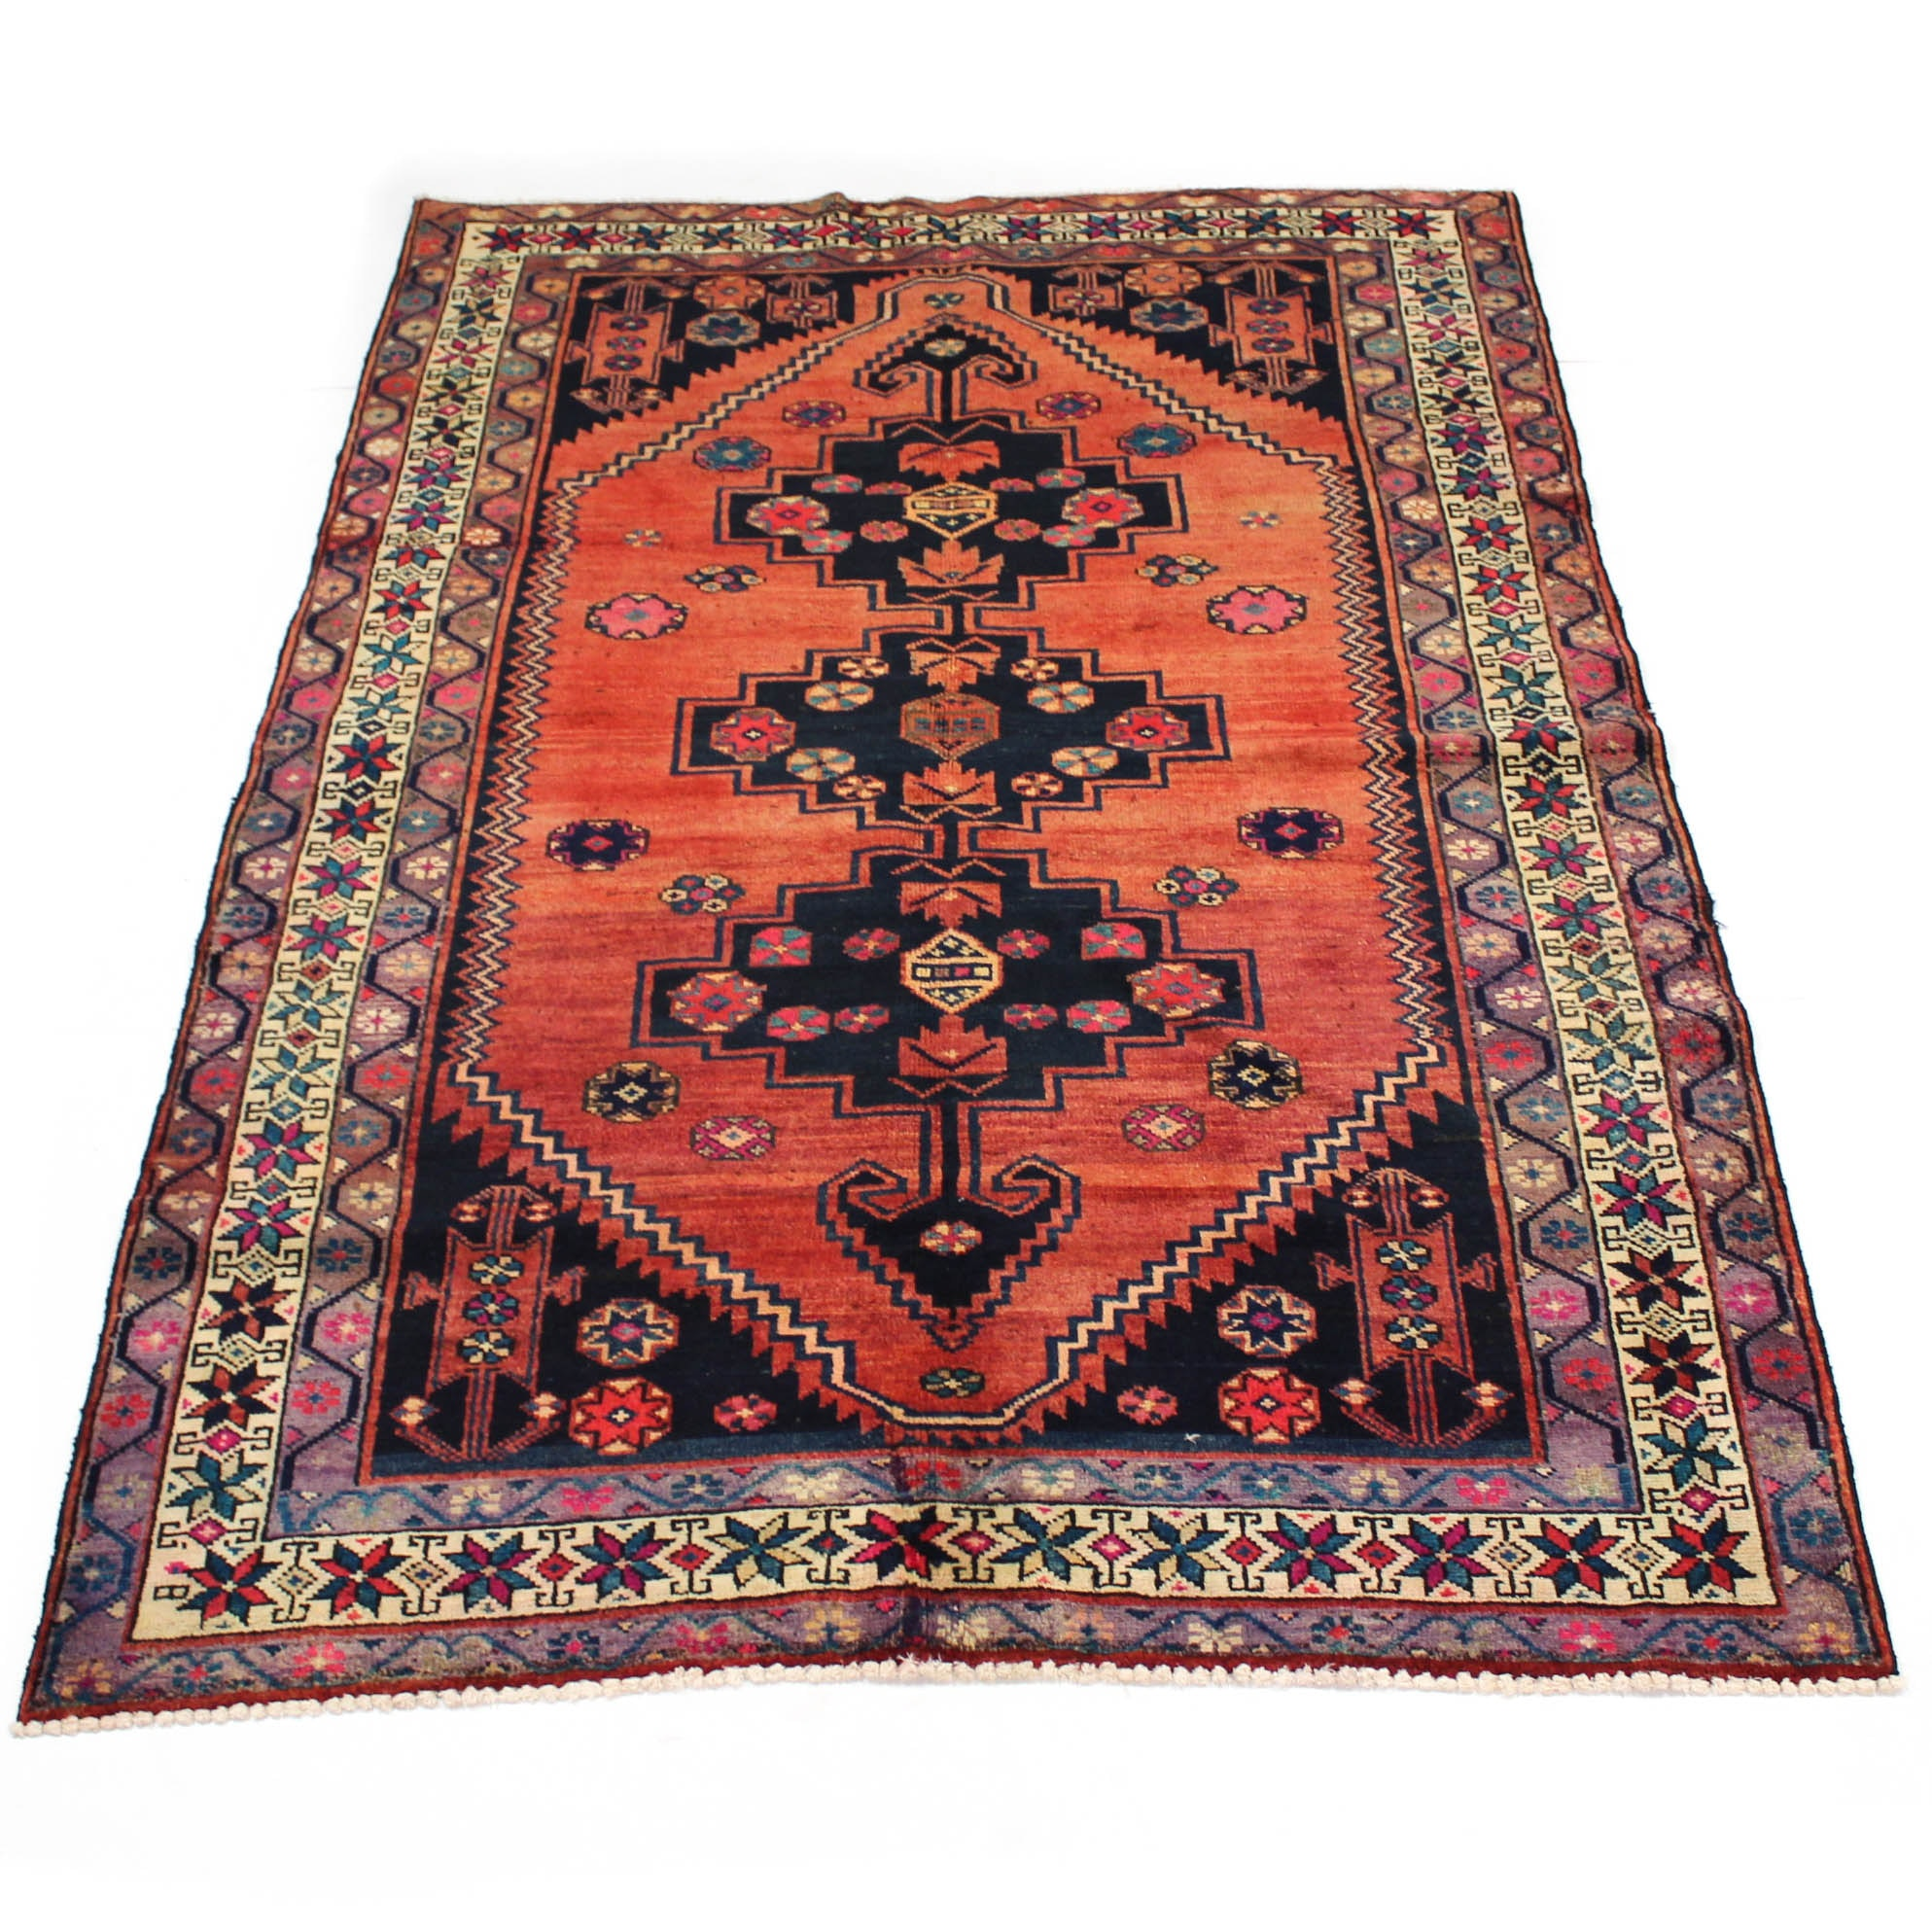 5'1 x 8'2 Semi-Antique Hand-Knotted Persian Northwest Rug